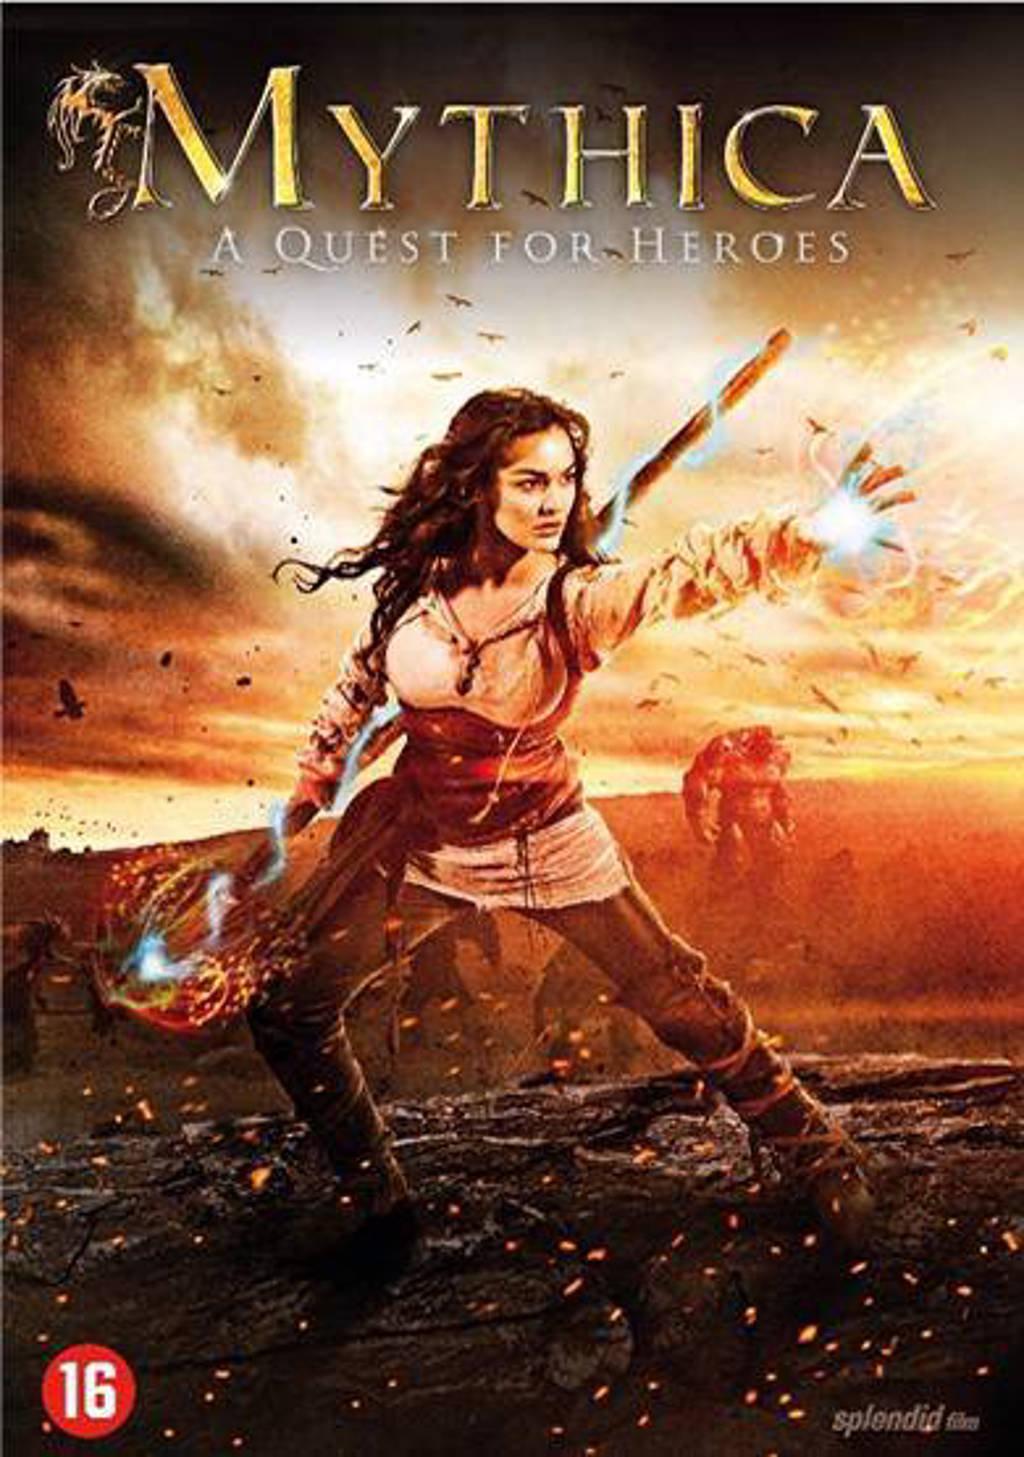 Mythica - A quest for heroes (DVD)